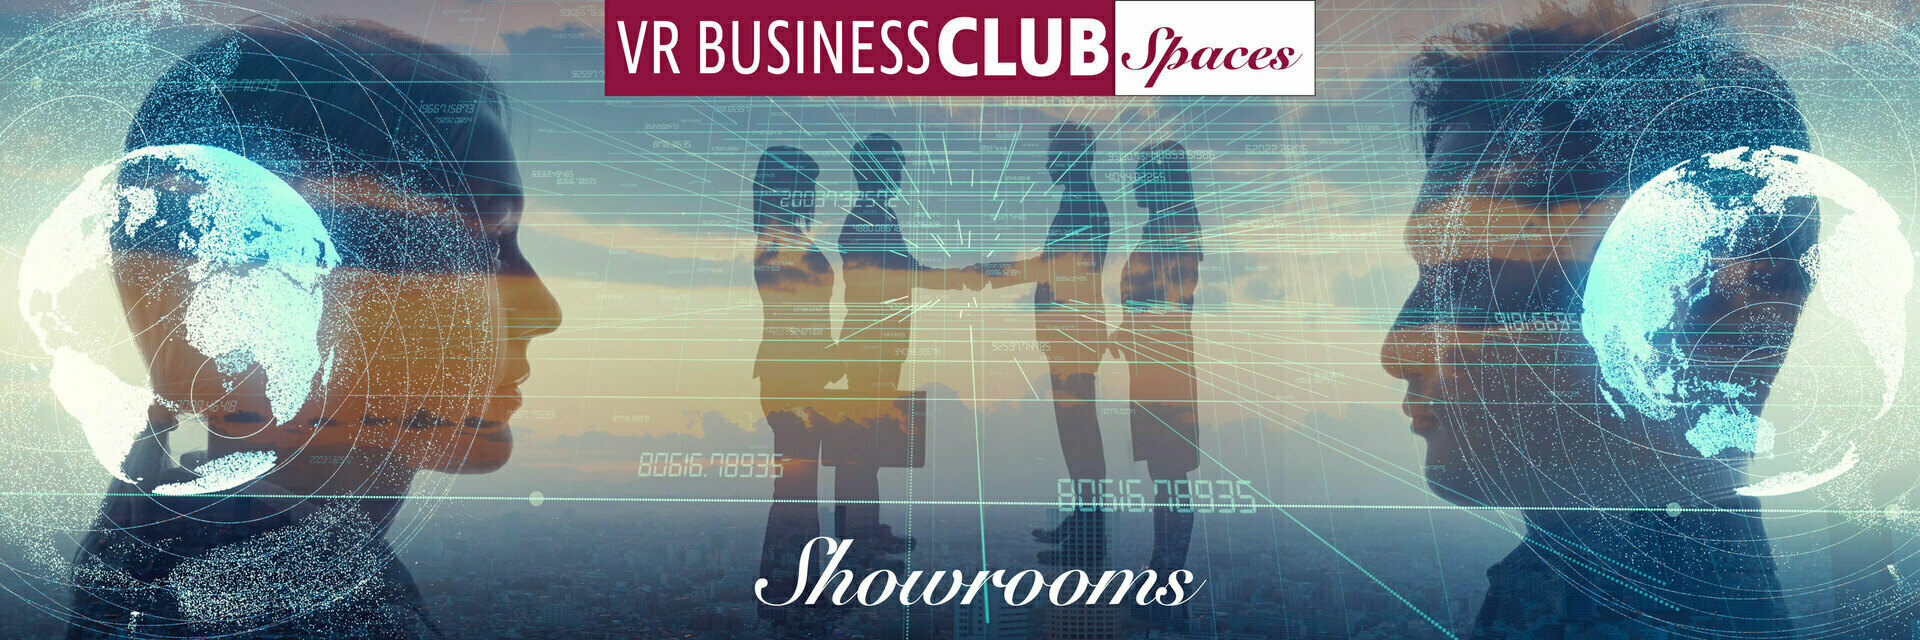 Vr business club sspaces showrooms